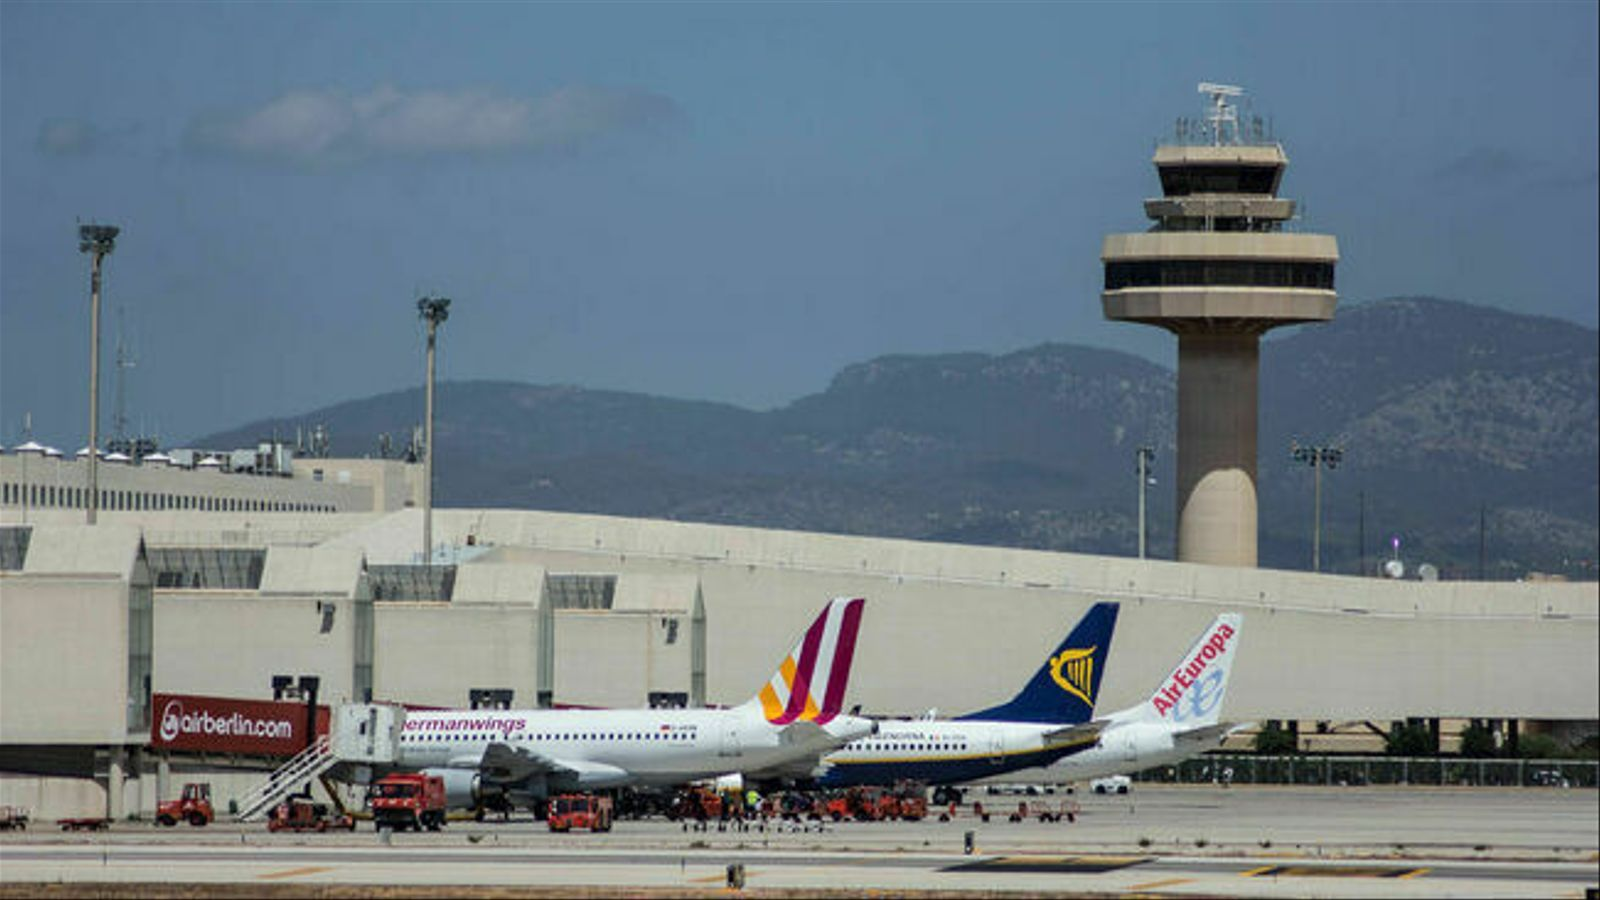 Aeroport de Son Sant Joan